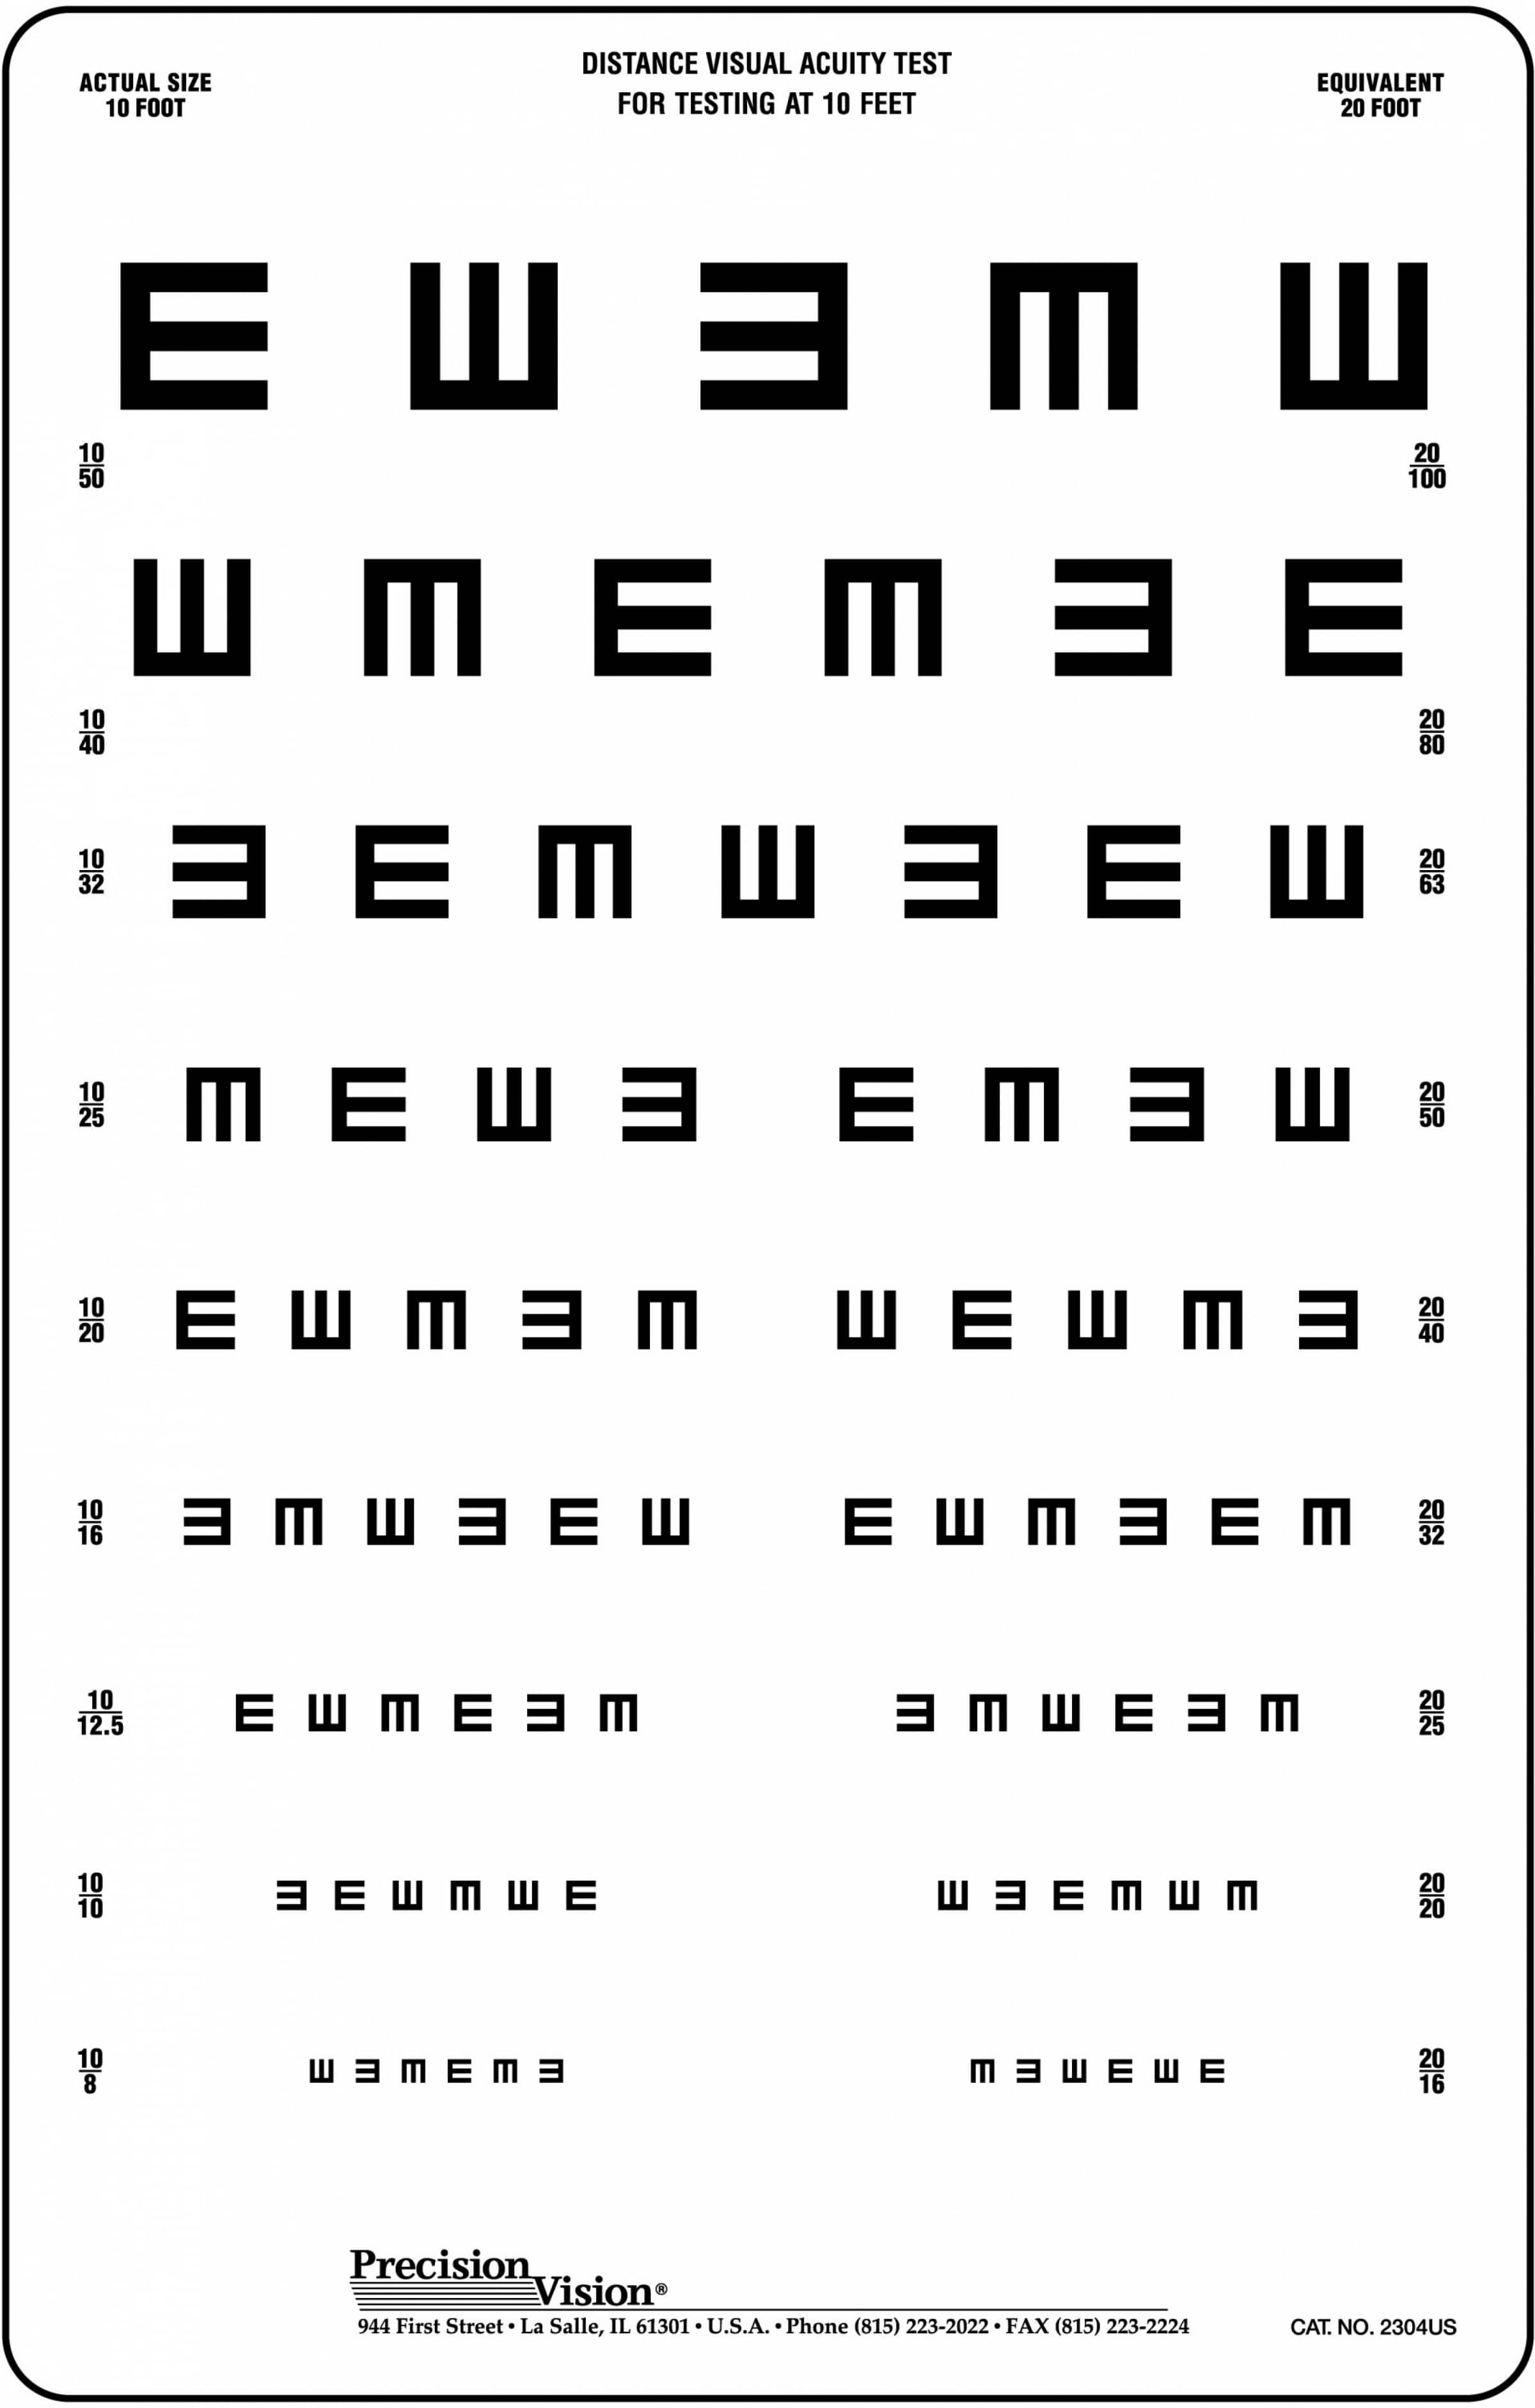 Hotv eye chart 10 ft precision vision 1725 add to cart geenschuldenfo Images